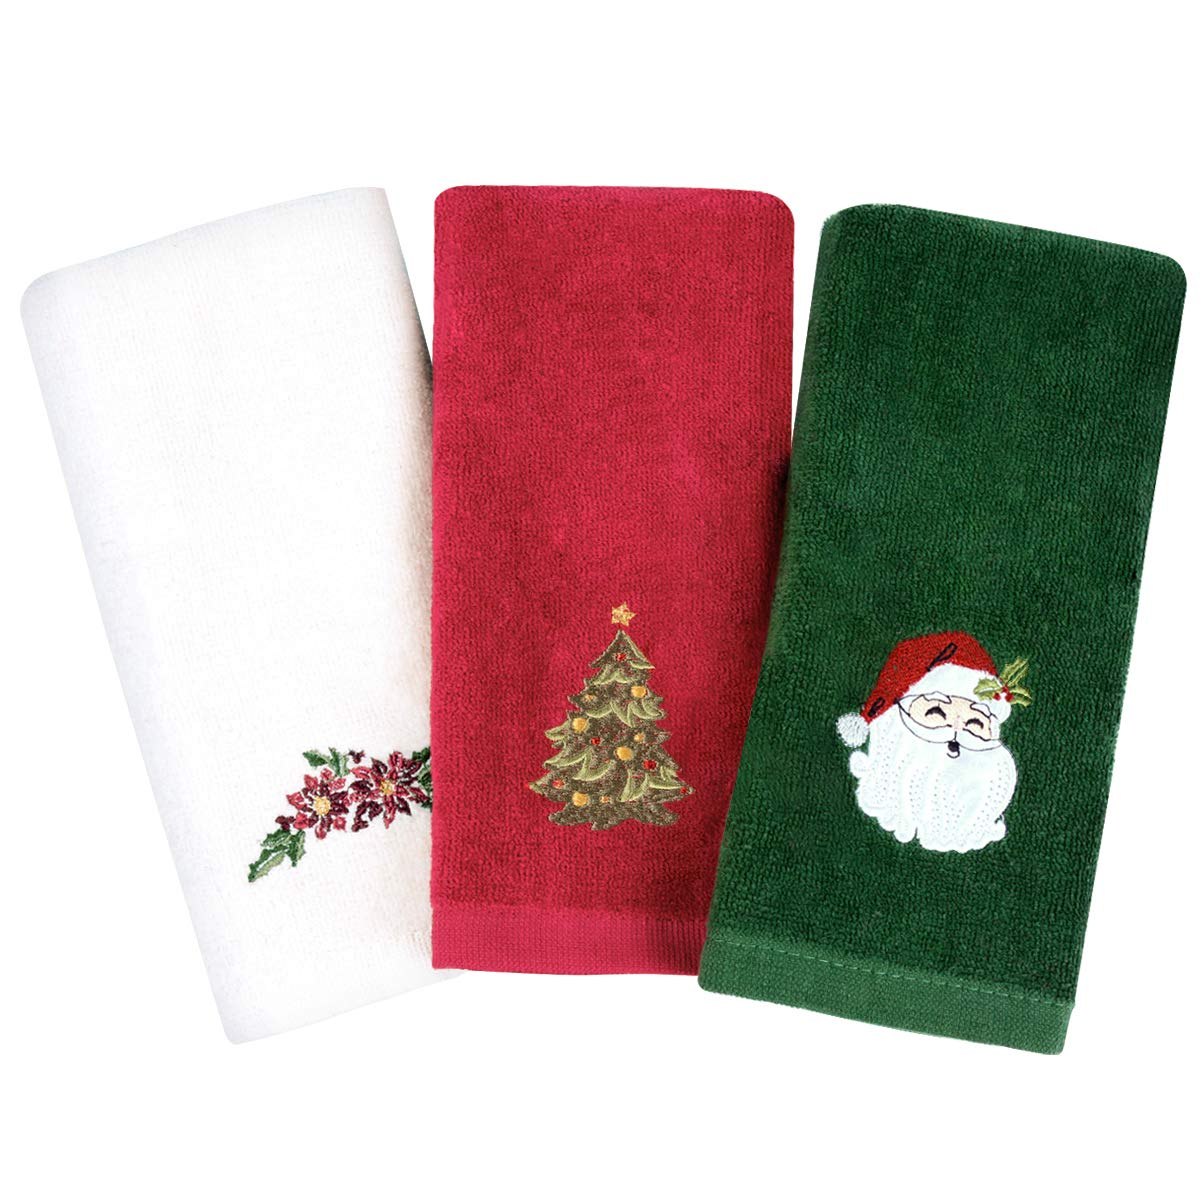 Armyte Christmas Hand Towels Washcloths  12 x 18 inch 100  Pure Cotton Towels Bathroom Kitchen Wash Basin  Drying  Cleaning  for Home and Kitchen  Set of 3  Red  White  Green